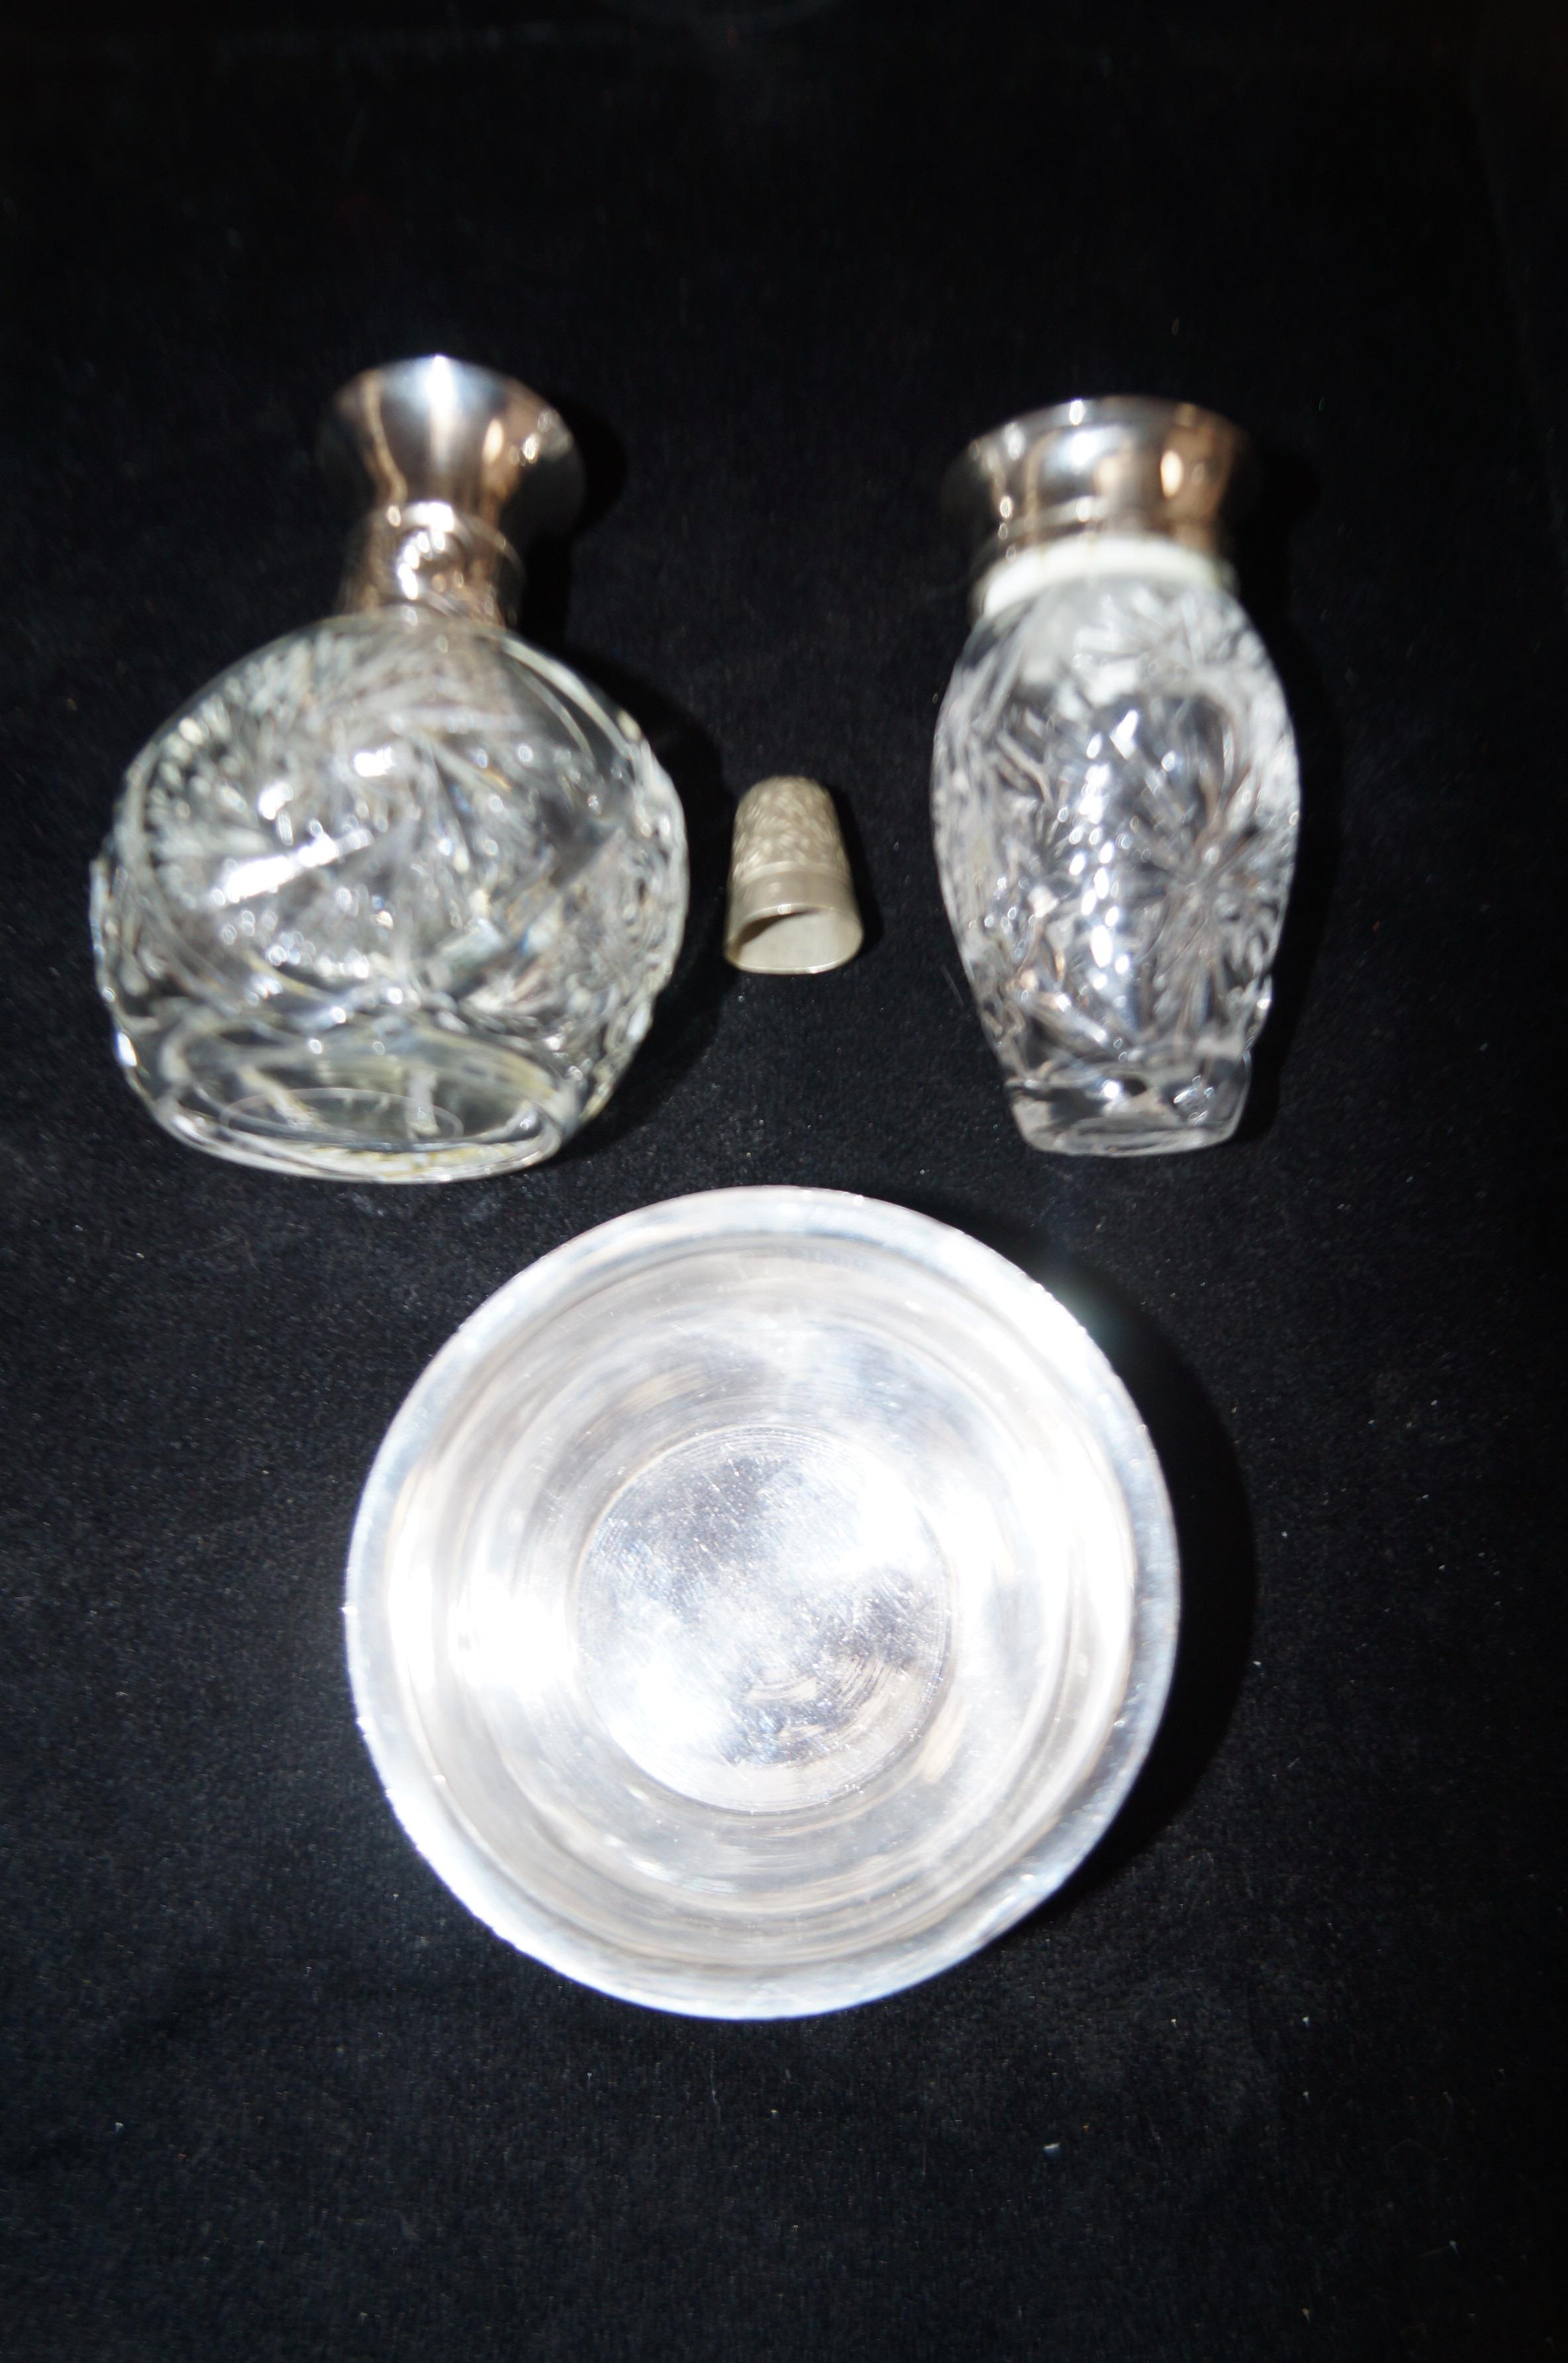 Lot 58 - 2 Scent bottles together with a silver thimble Che